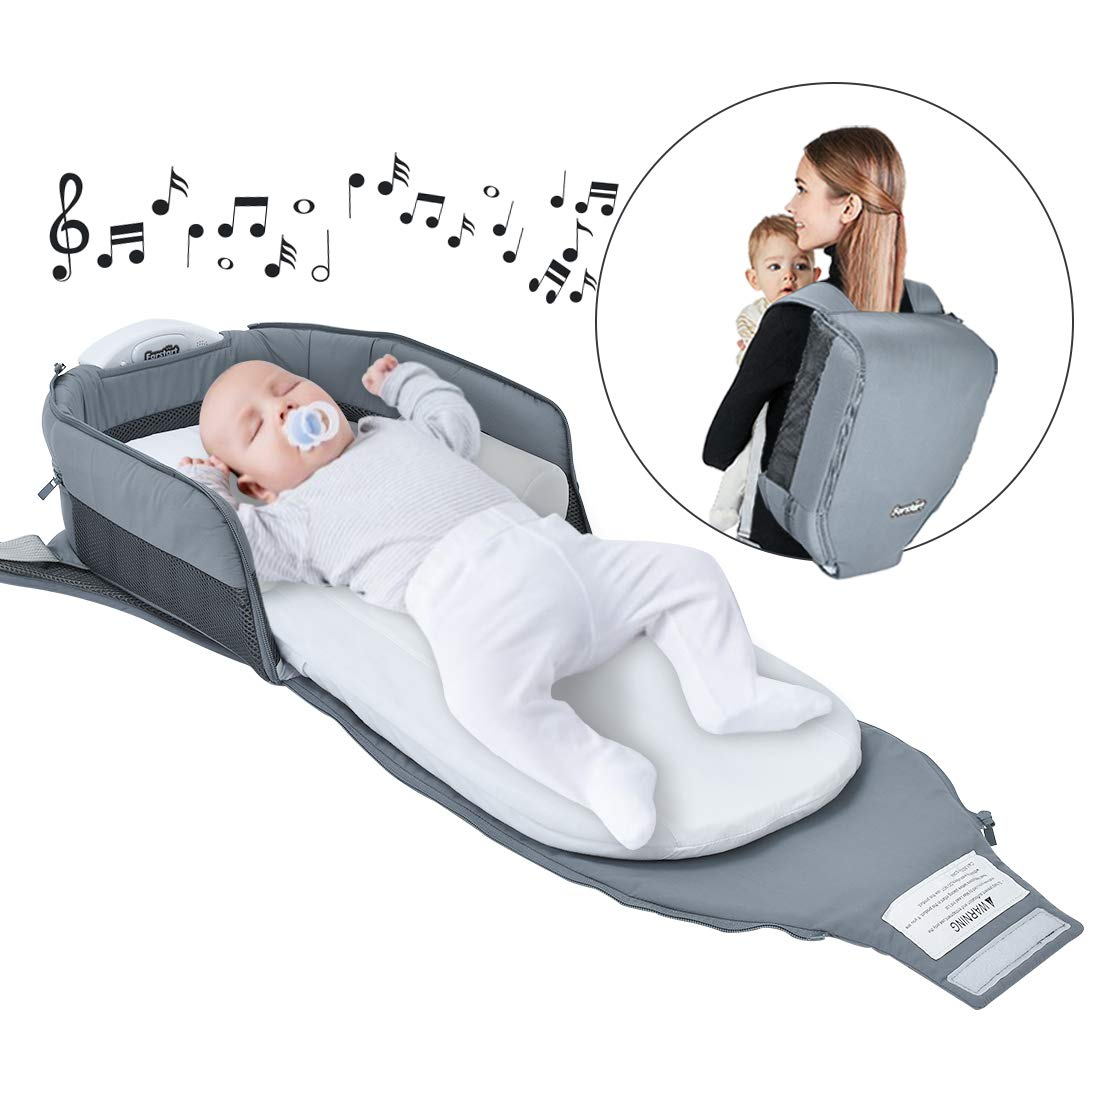 4 in 1 | Portable Bassinet | Foldable Baby Bed | with Light and Music Baby Lounger Travel Crib Infant Cot Newborn As A Diaper Bag Changing Station Seat Tummy Time Folding Crib Nursery by Forstart